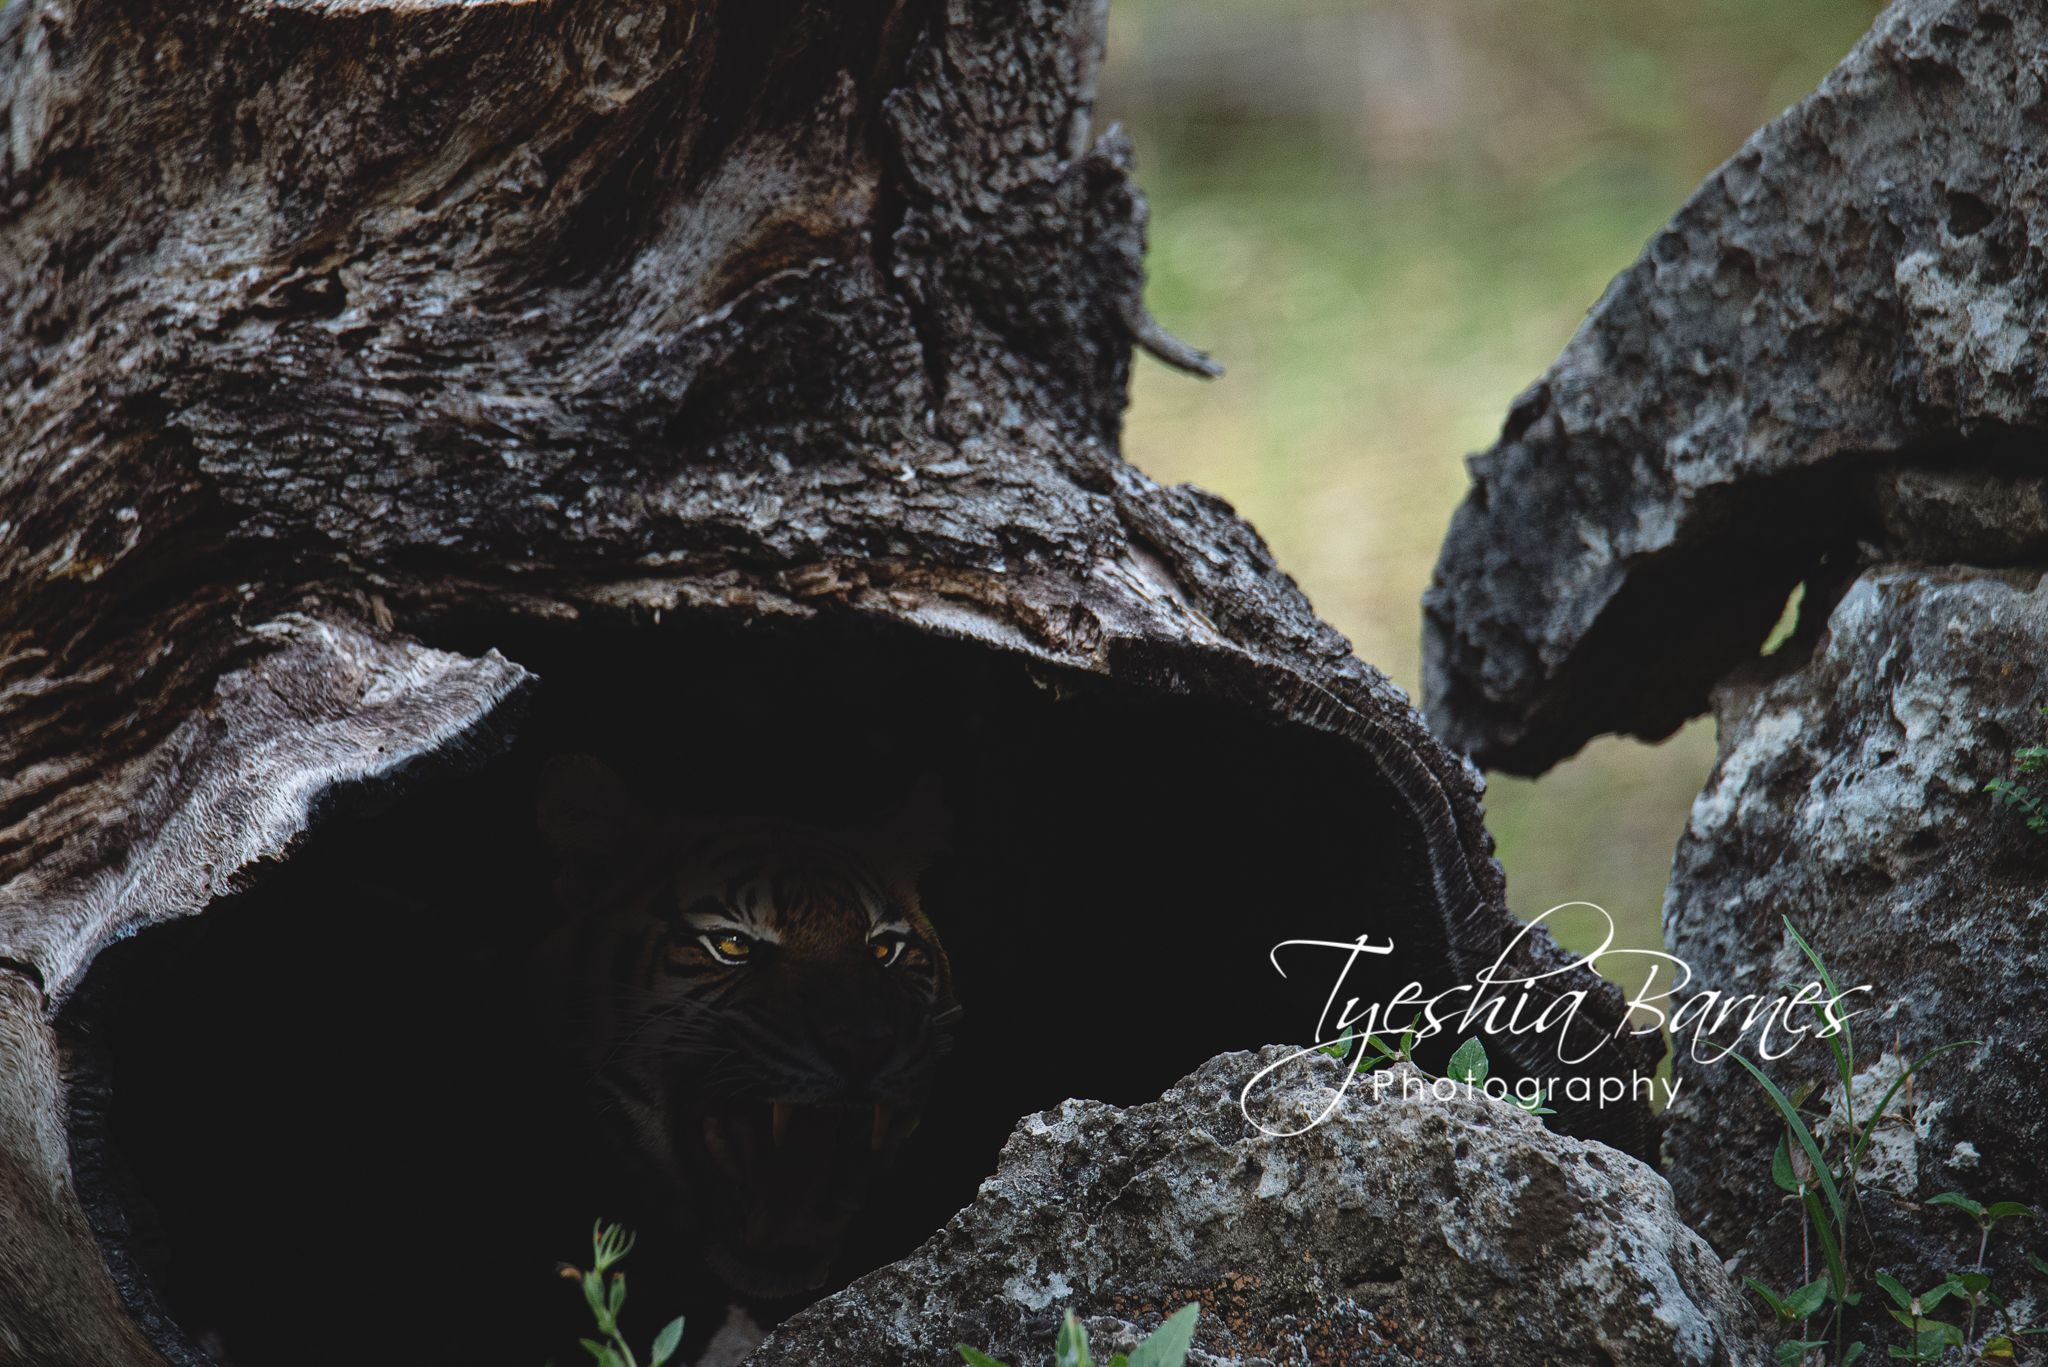 Beware of the dangers that stand before you rather the danger you can't see #naturephotography #blacklivesmatter #travel #travelphotographer #nature #landscape #commercialphotography #photographylover #photographylovers #photographylife #fineart #wildlife #cardinals #birds